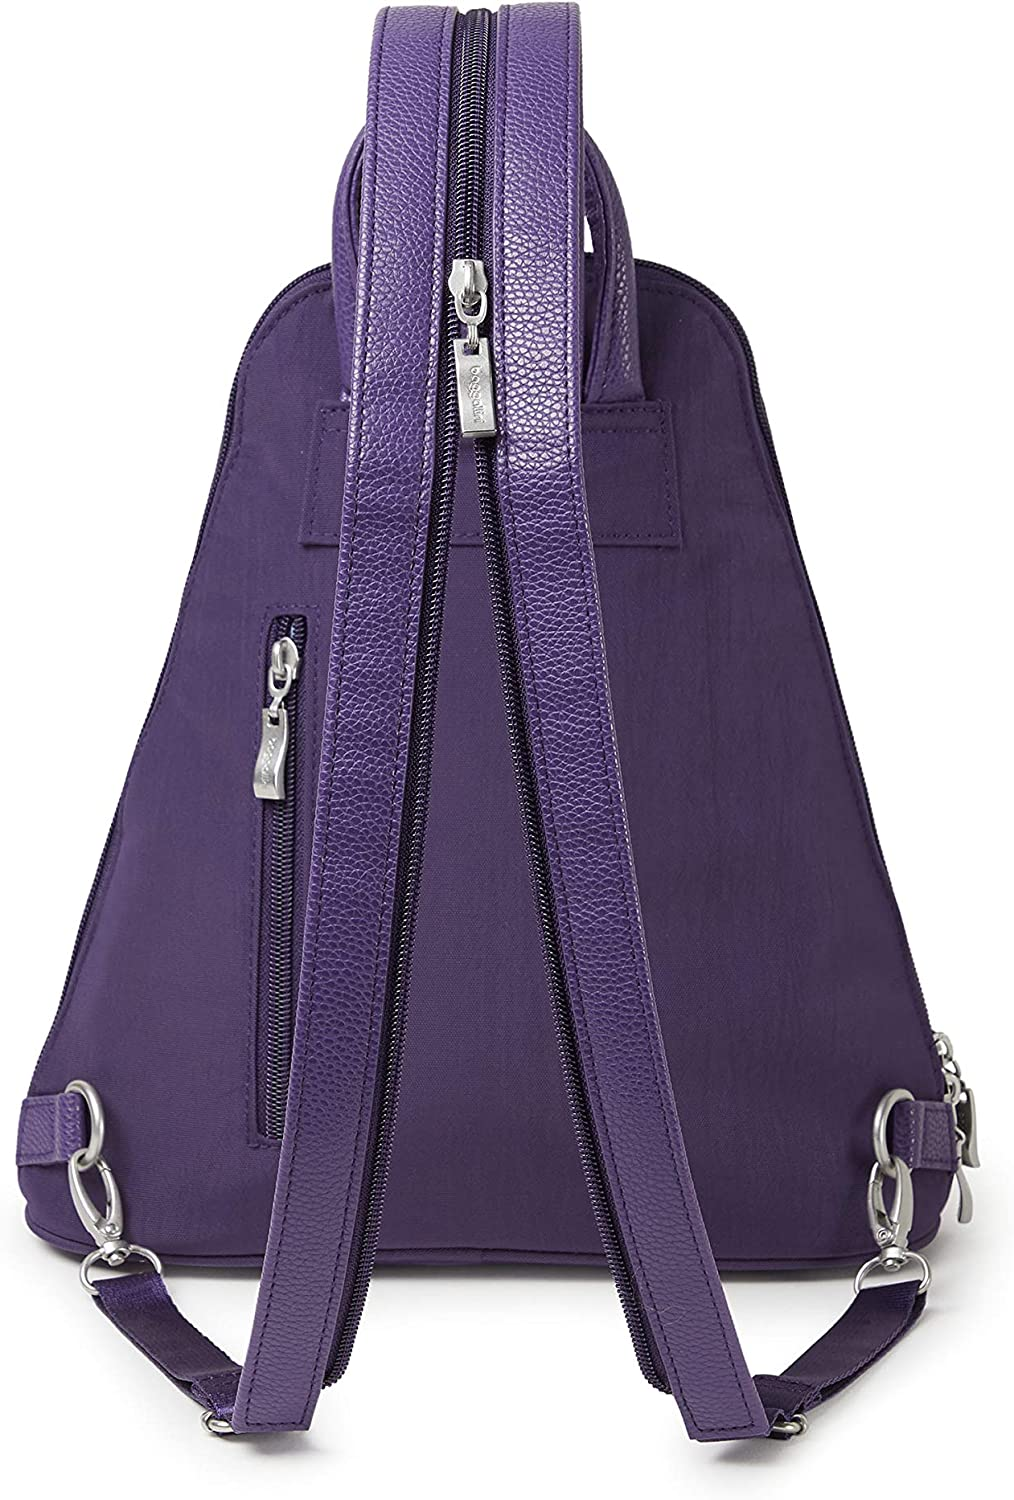 Baggallini Women's Metro Backpack